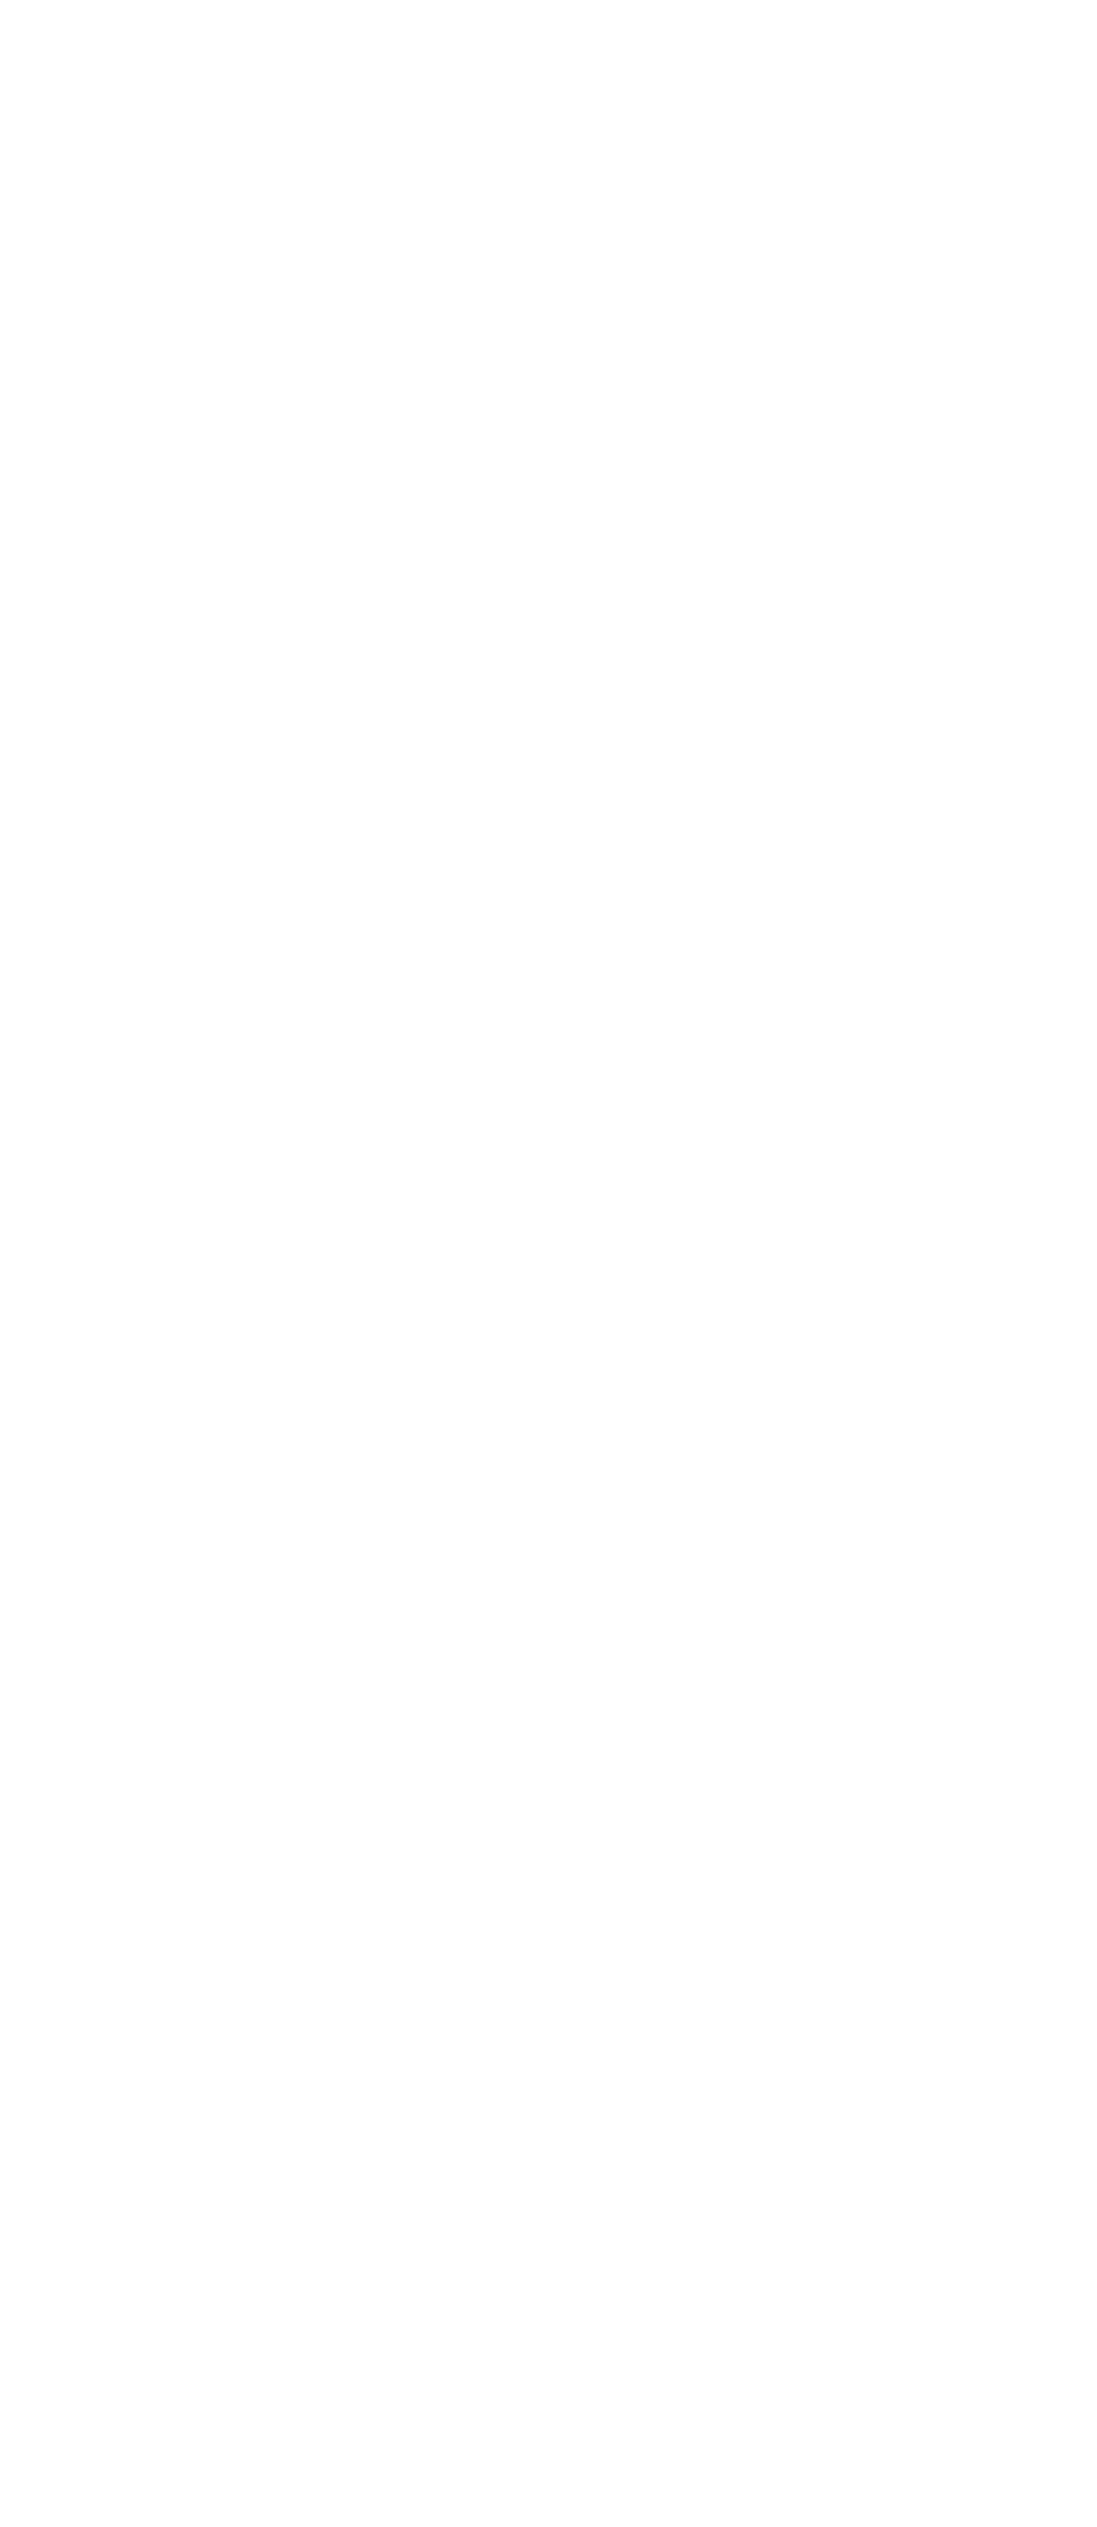 producer / game director 橋野 桂